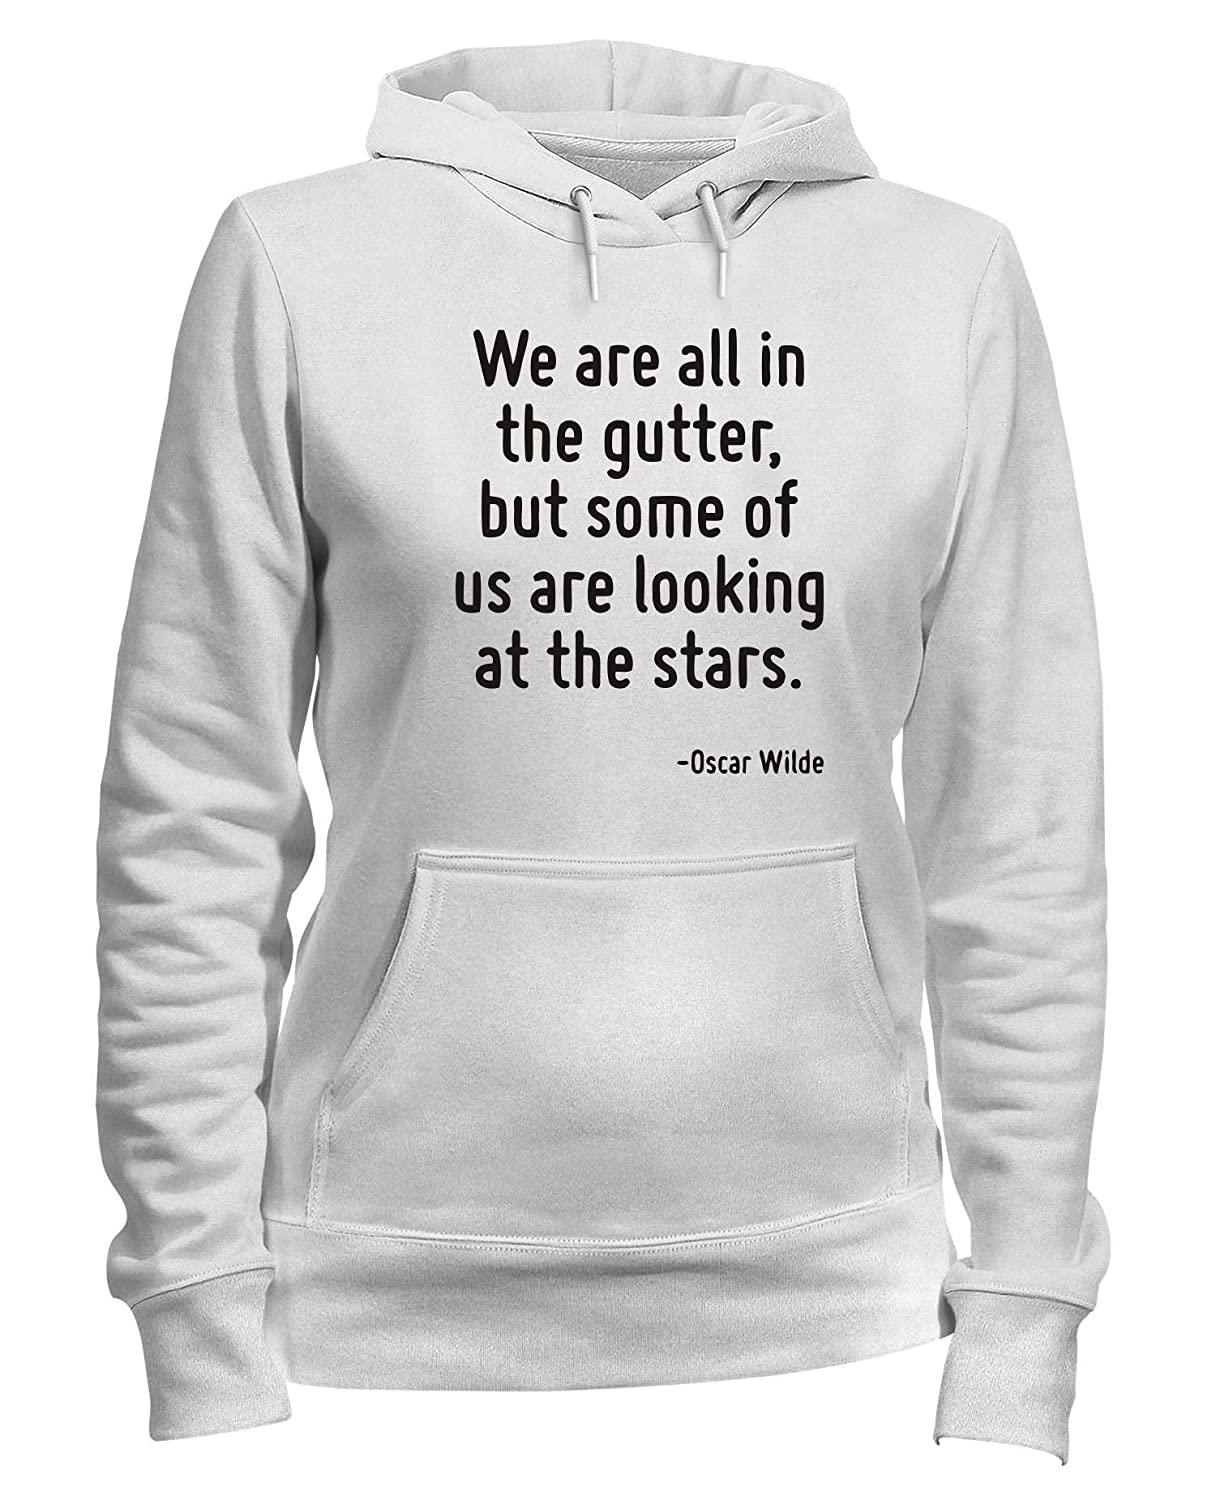 Speed Shirt Felpa Donna Cappuccio Bianca CIT0246 We Are all in The Gutter But Some of US Are Looking AT The Stars